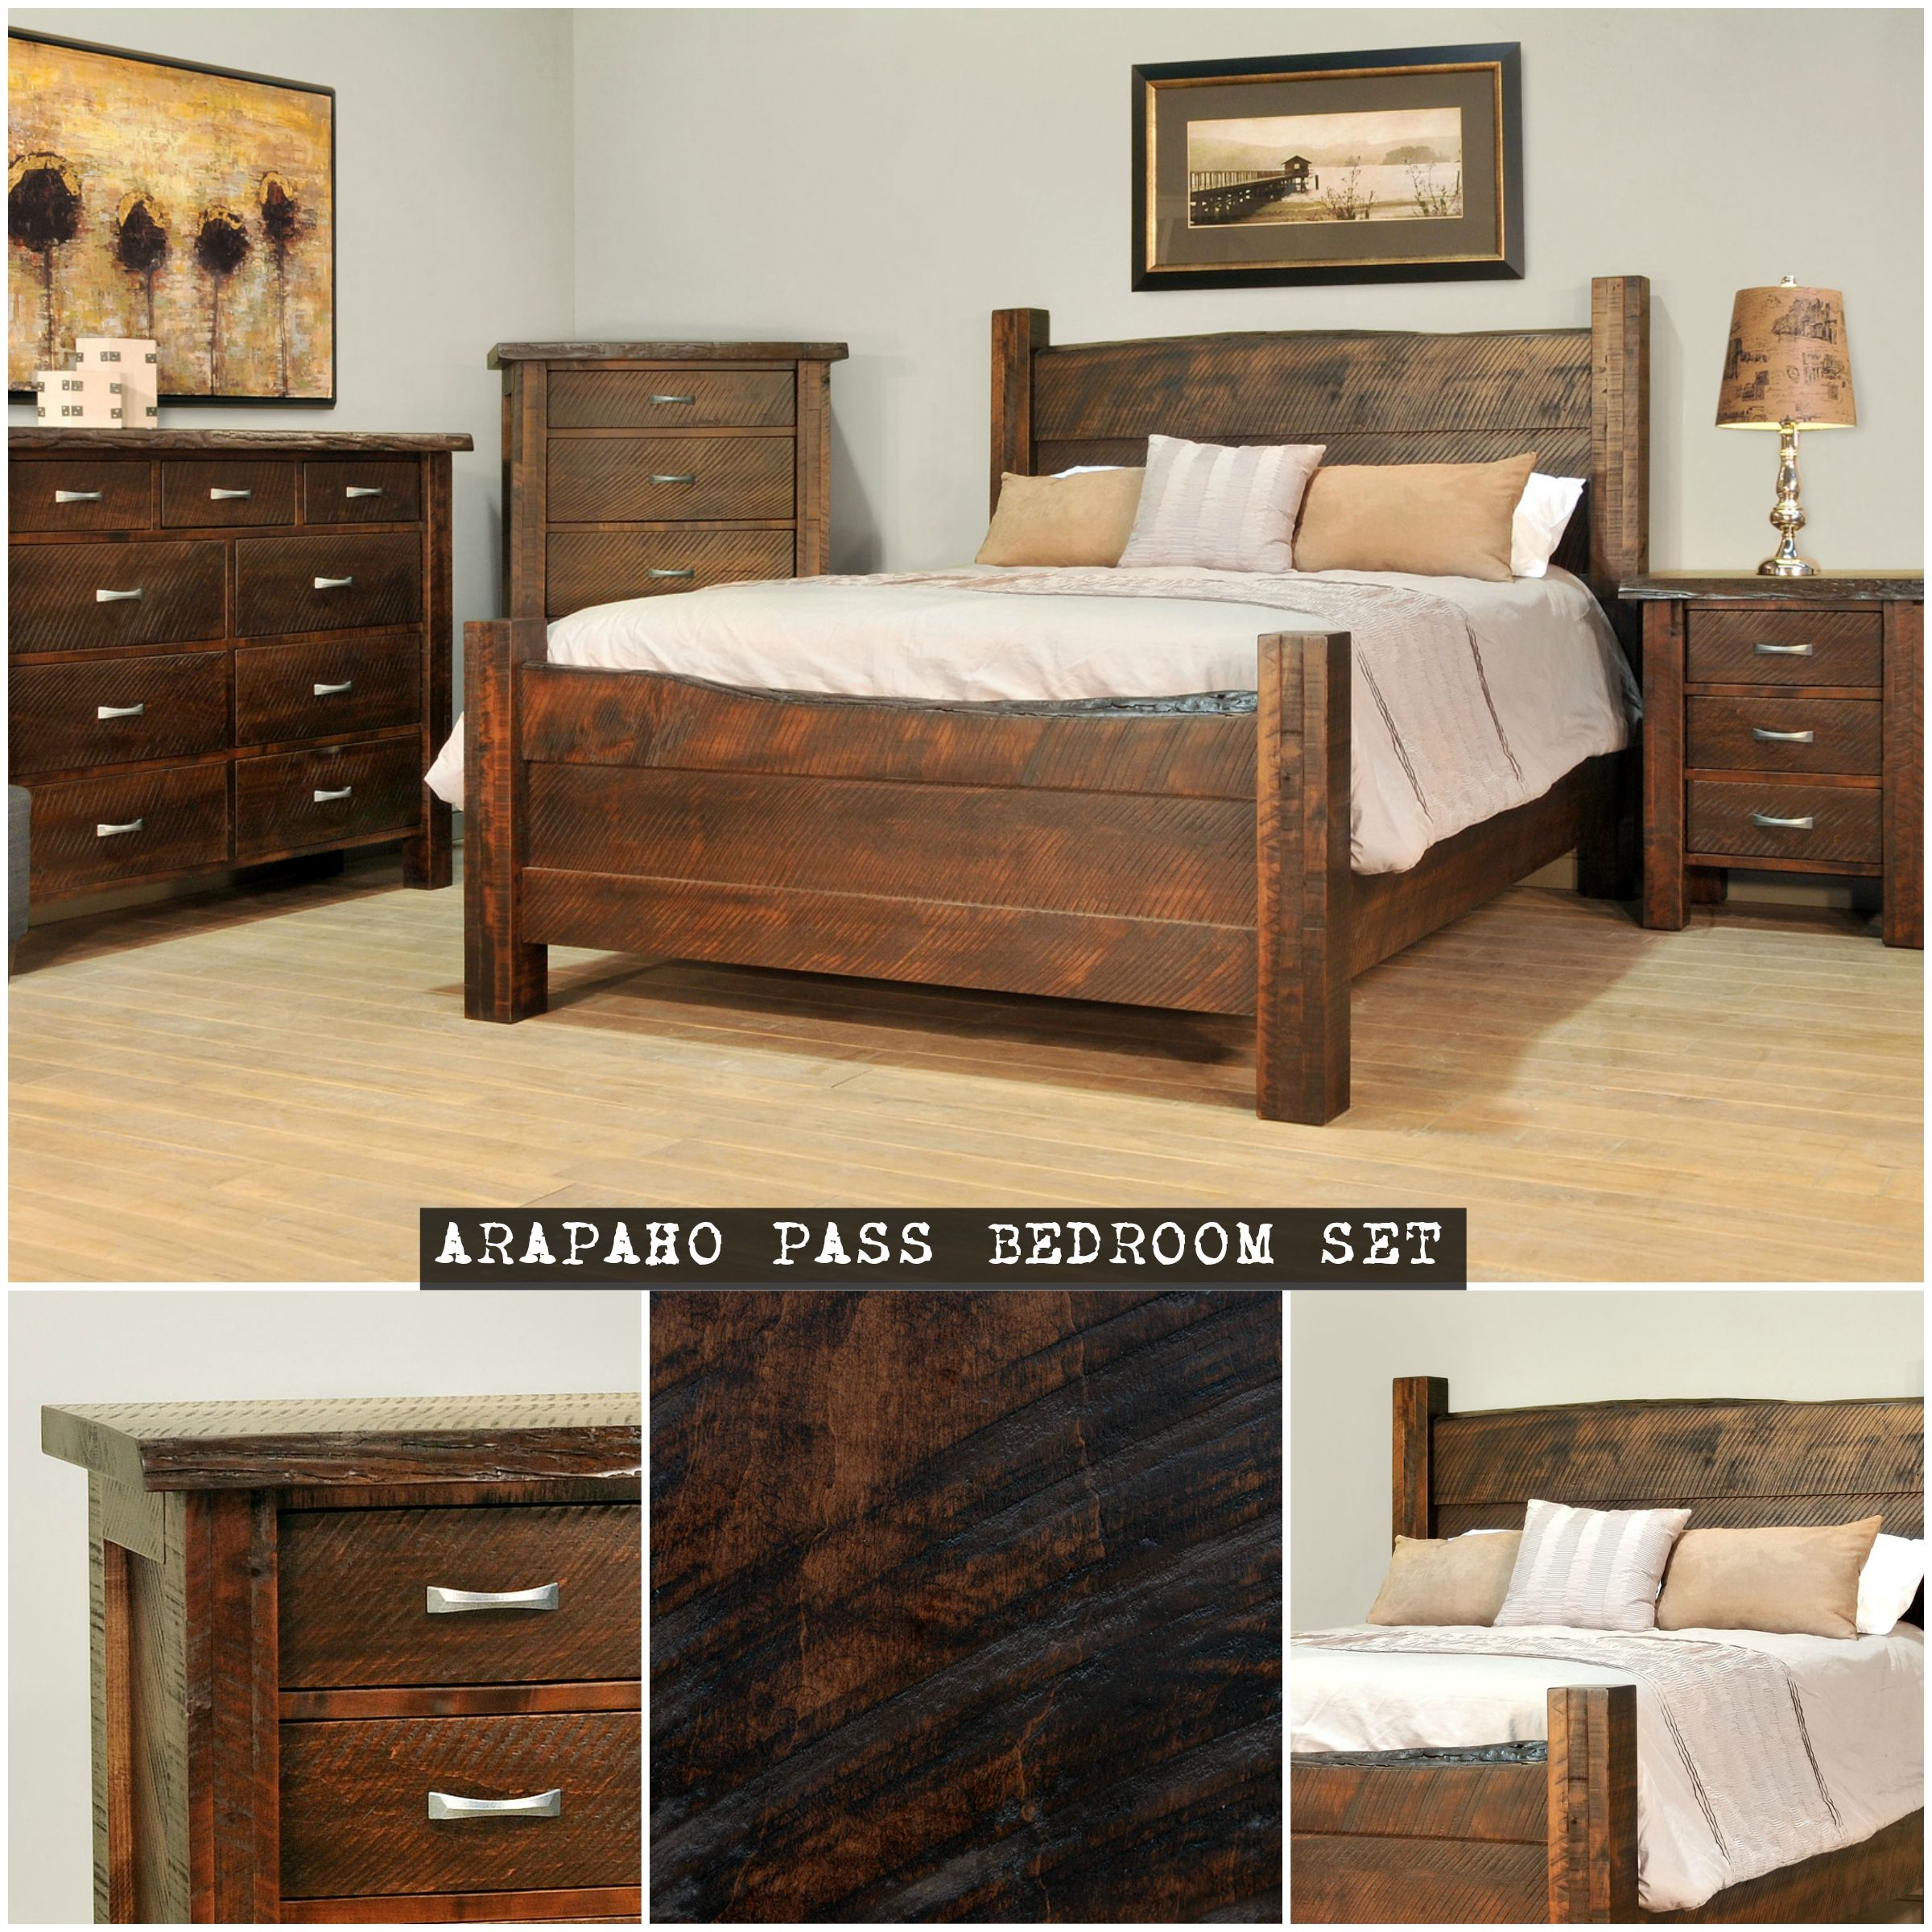 Arapaho Pass Rough Sawn Bedroom Set   Countryside Amish Furniture